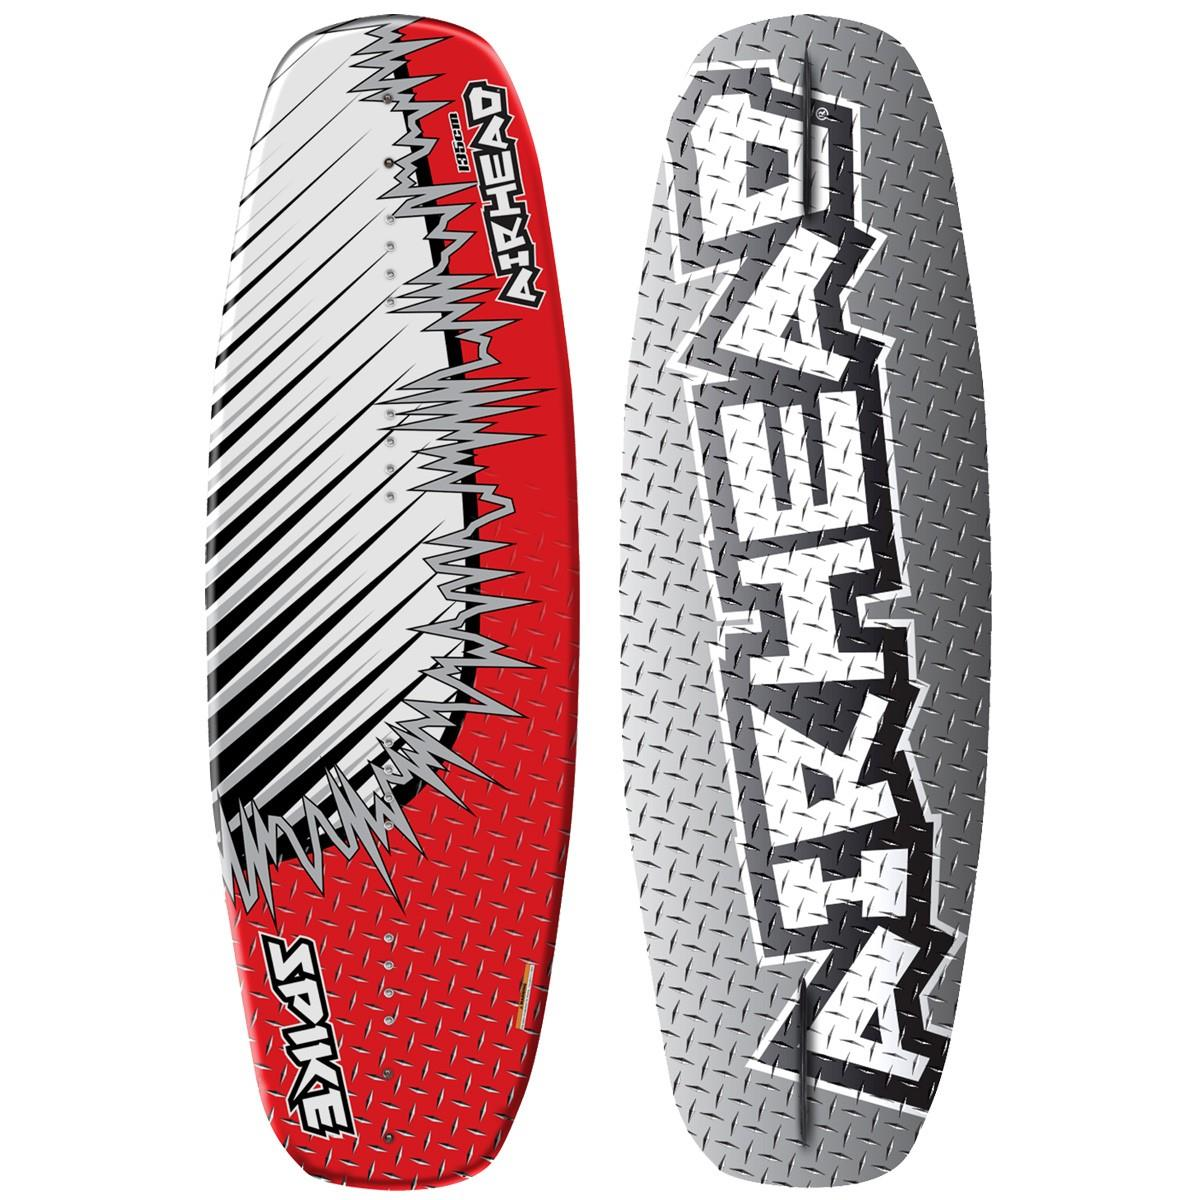 Airhead AHW-2020 Spike Wakeboard by Airhead